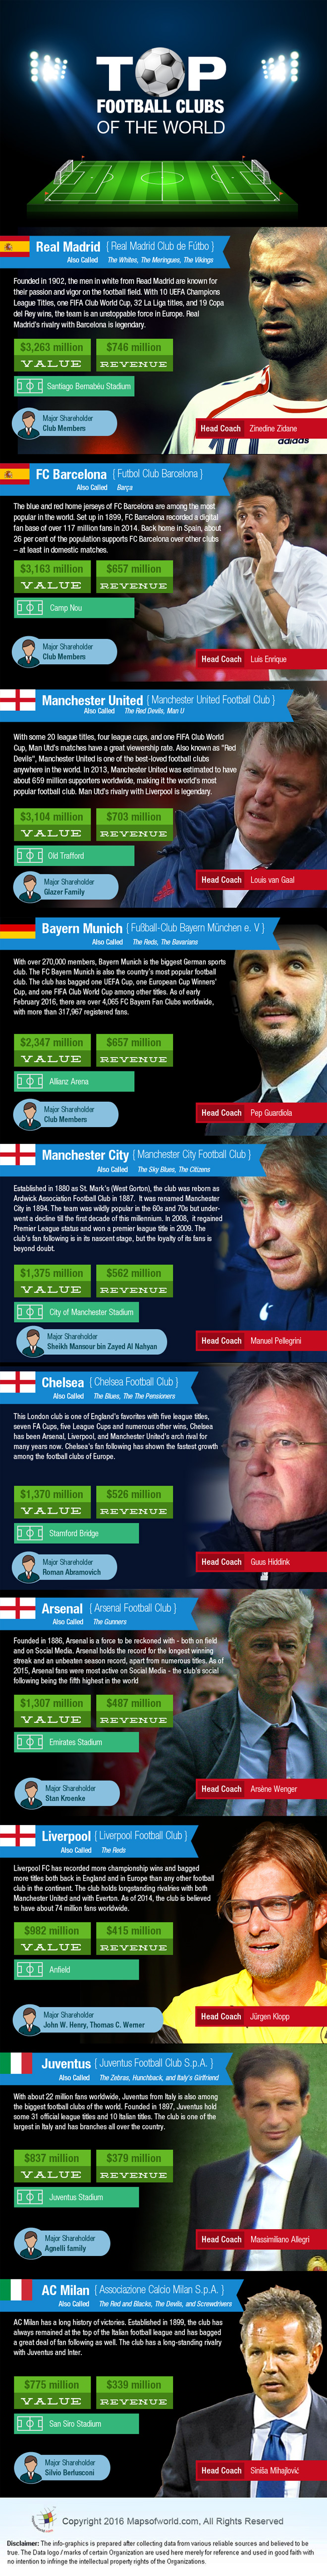 infographic on Top Football Clubs in the World